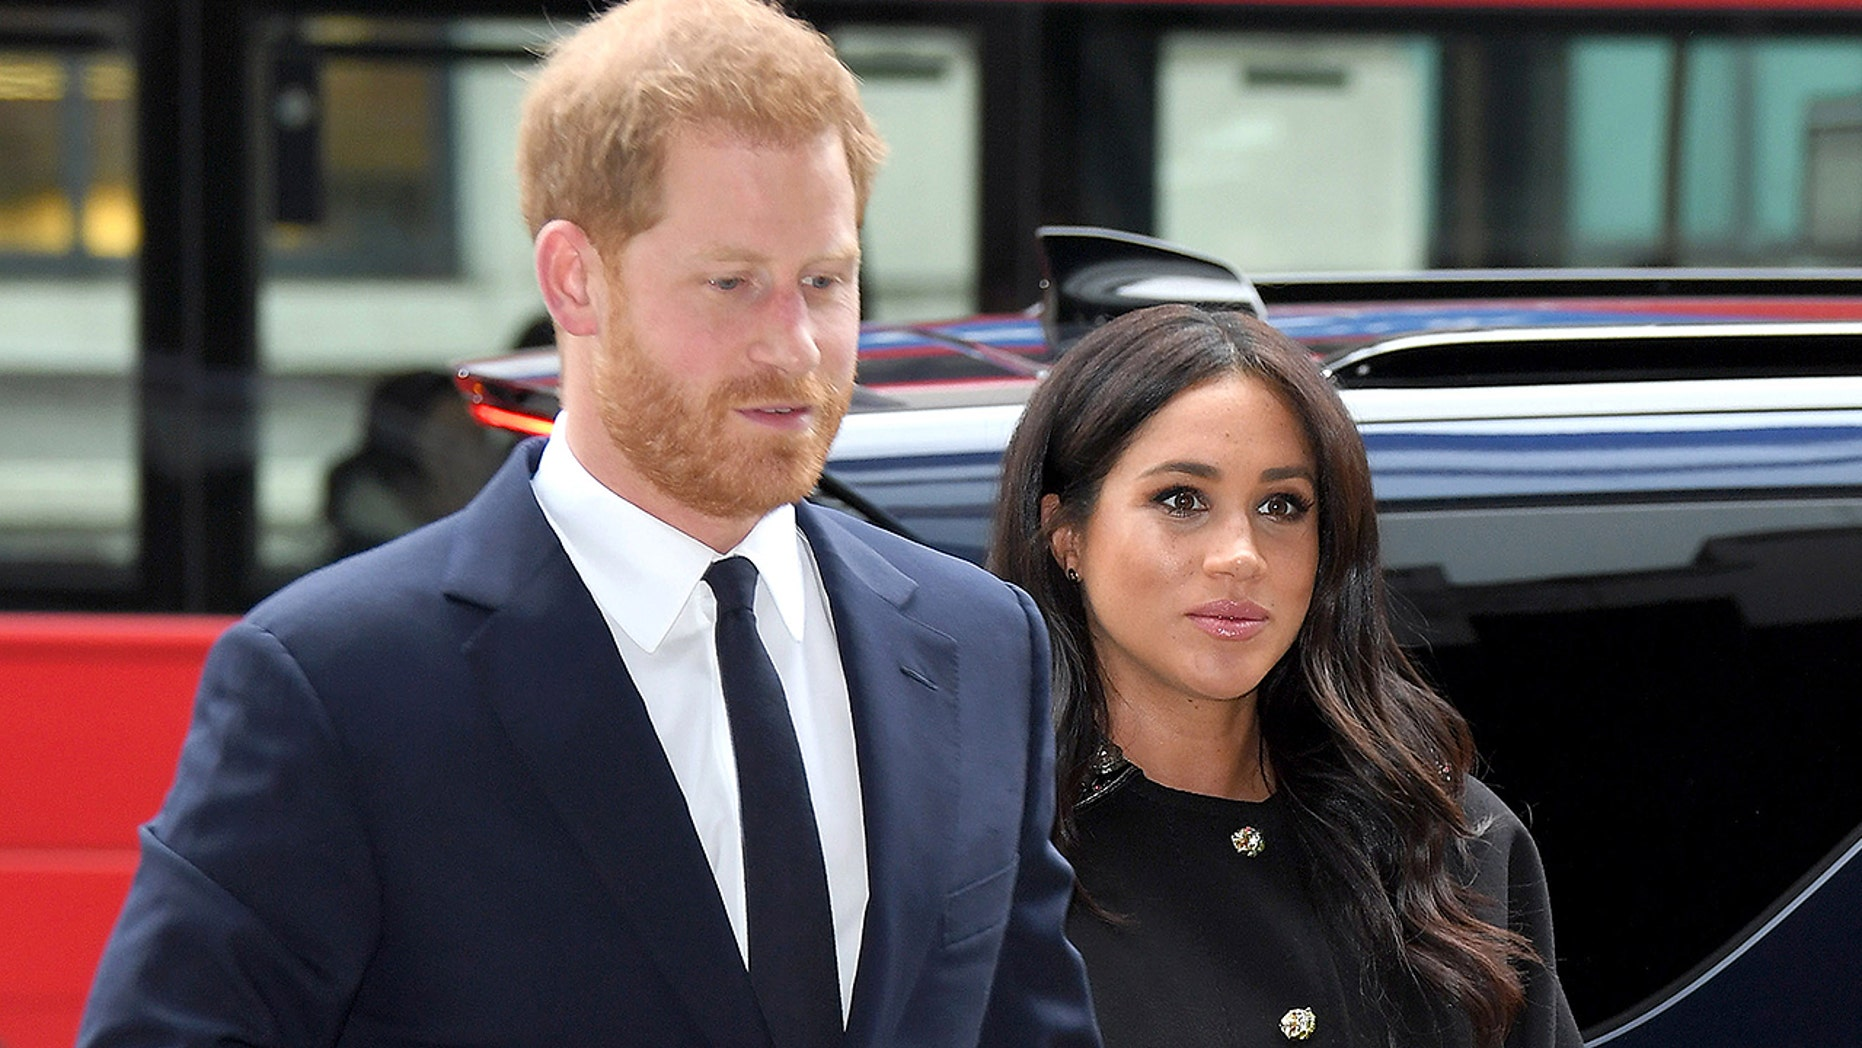 Christchurch shootings: Meghan and Harry pay tribute to victims